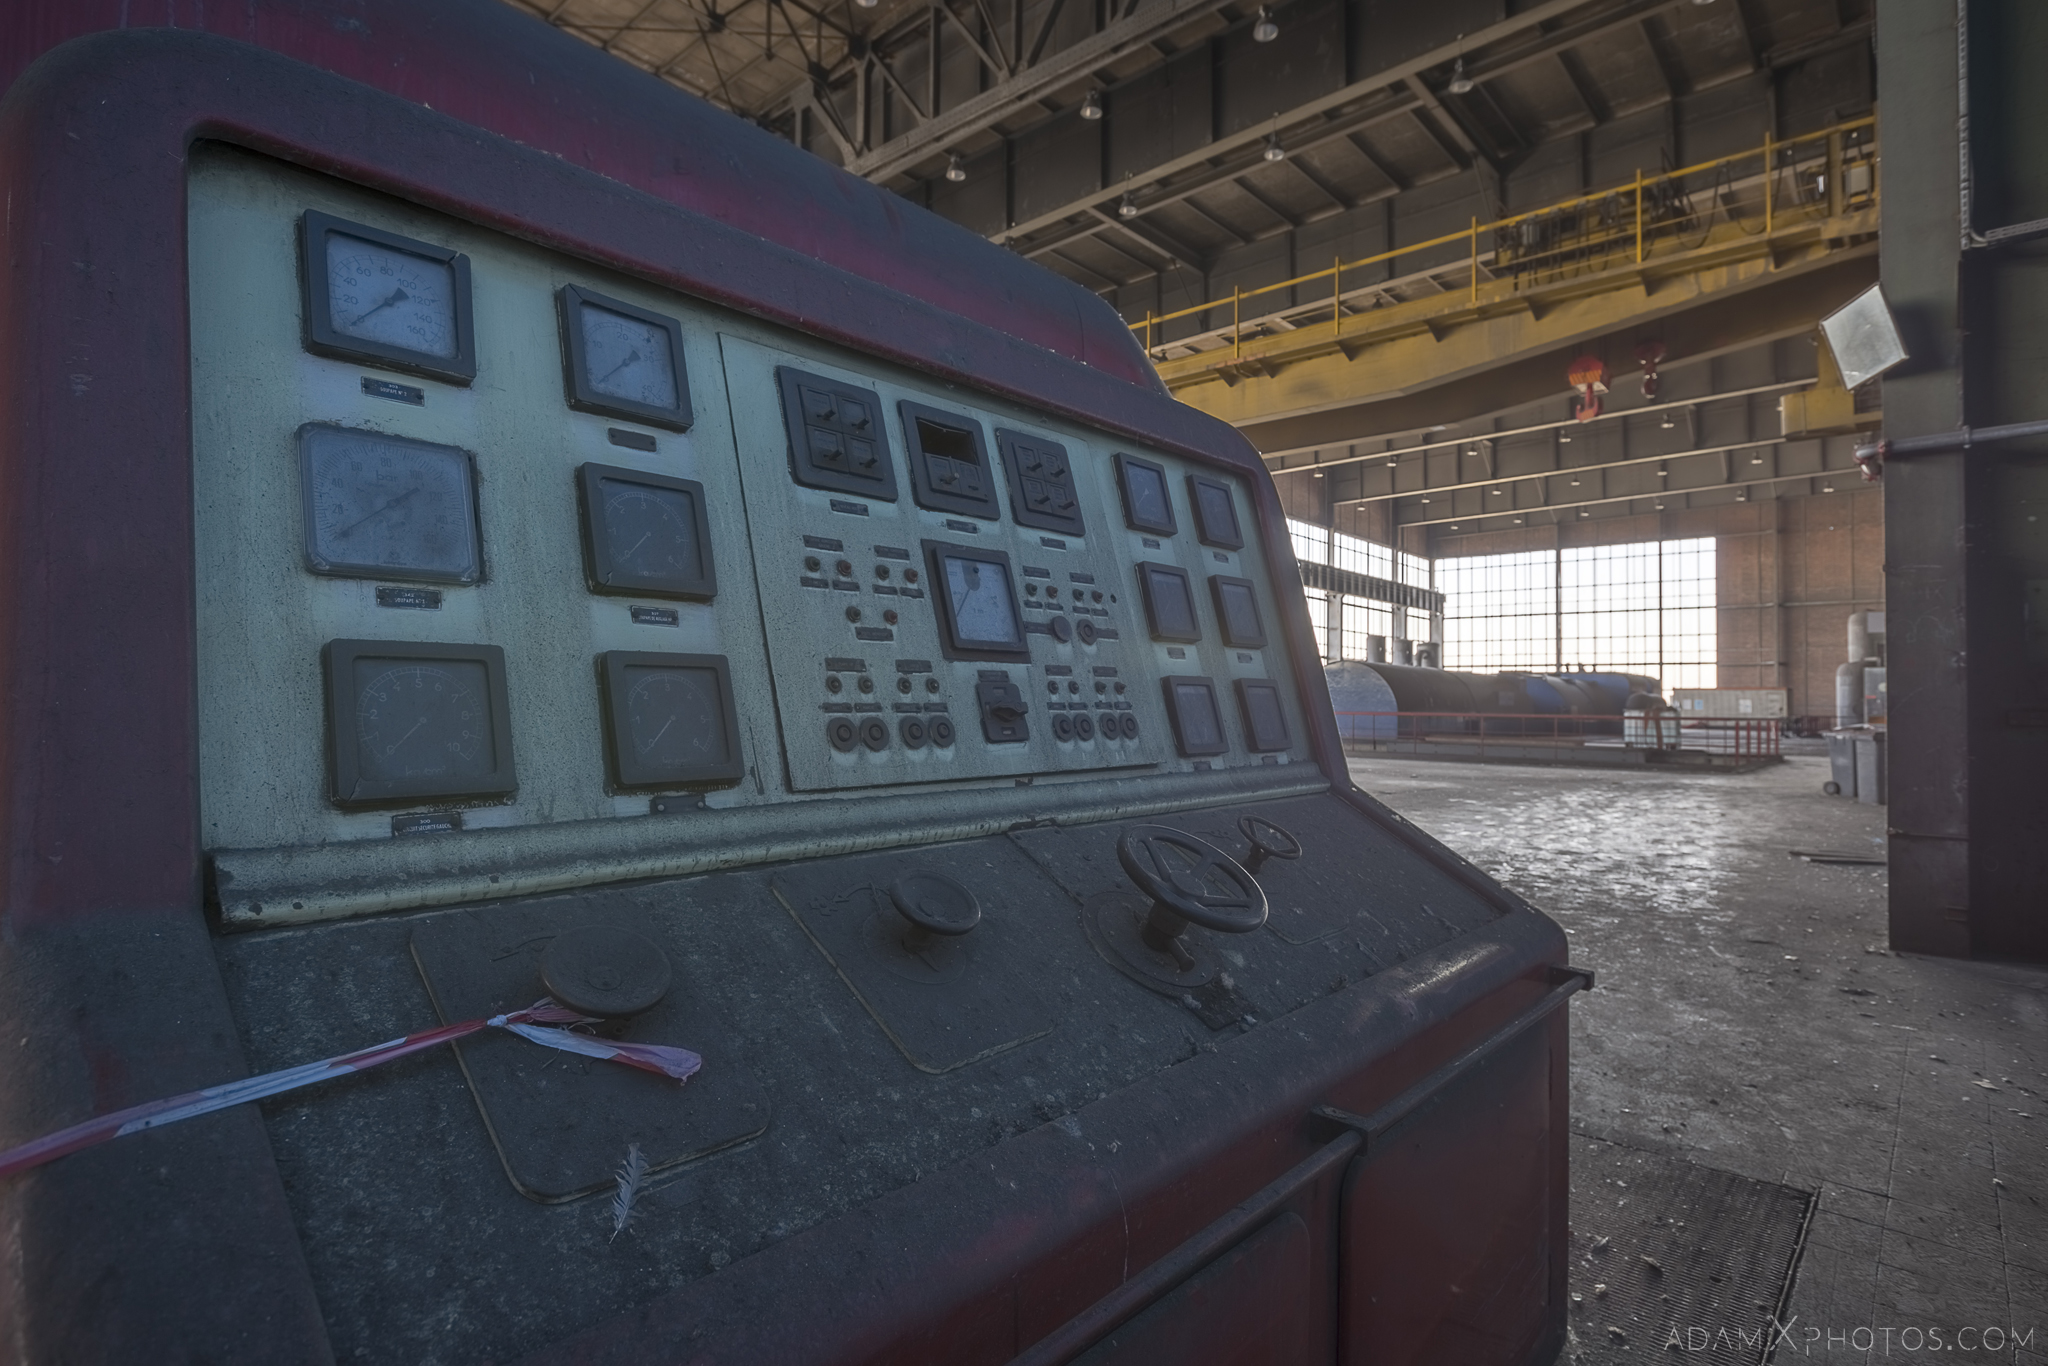 red control panel turbine hall Centrale de schneider powerplant power plant industrial industy Adam X Urban Exploration France Access 2017 Abandoned decay lost forgotten derelict location creepy haunting eerie